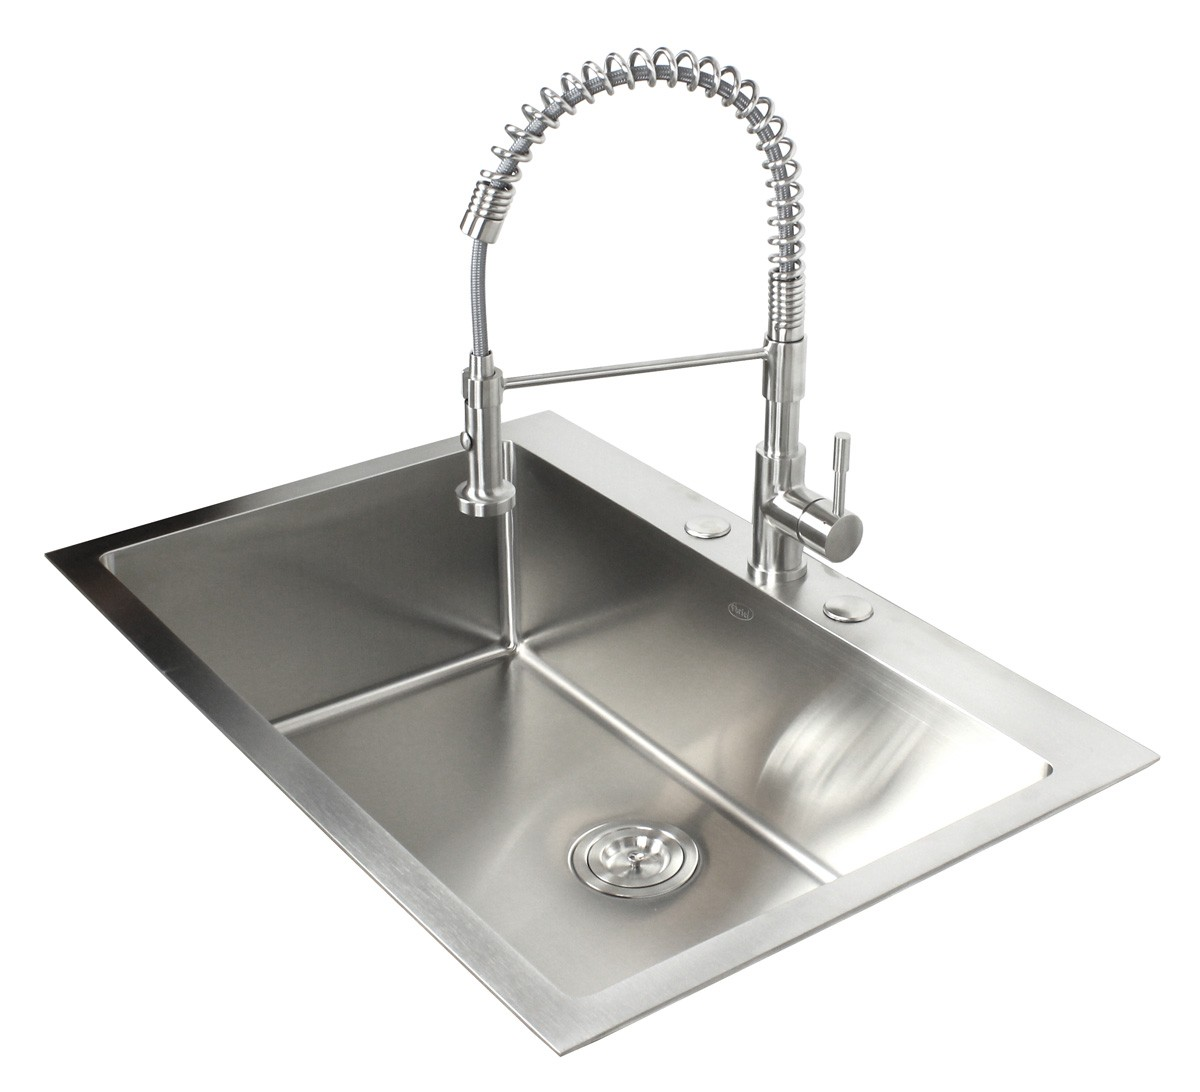 33 Inch Top Mount Drop In Stainless Steel Kitchen Sink